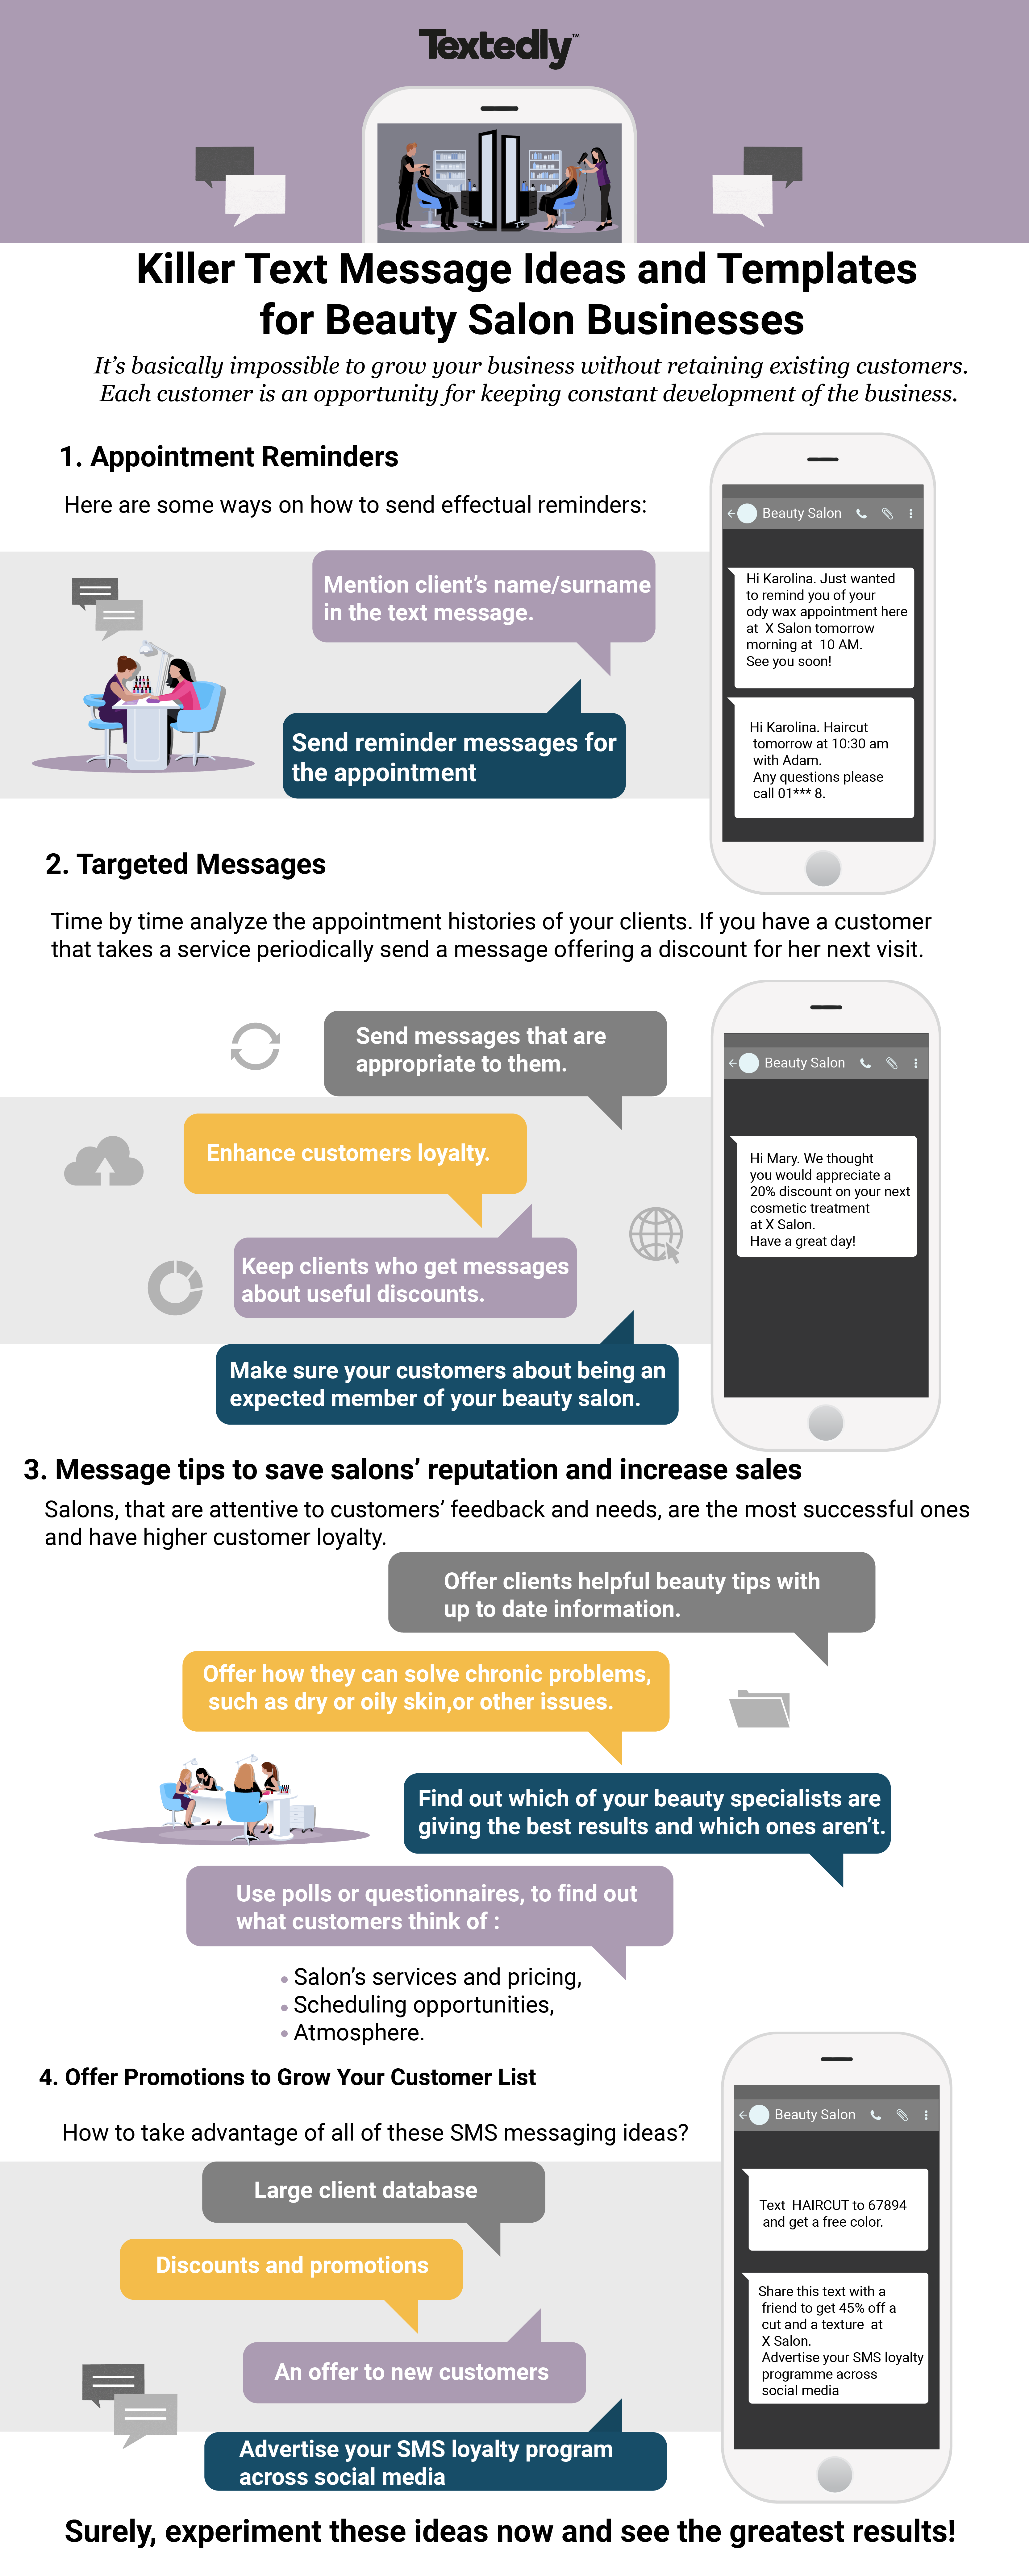 Killer Text Message Ideas and Templates for Beauty Salon